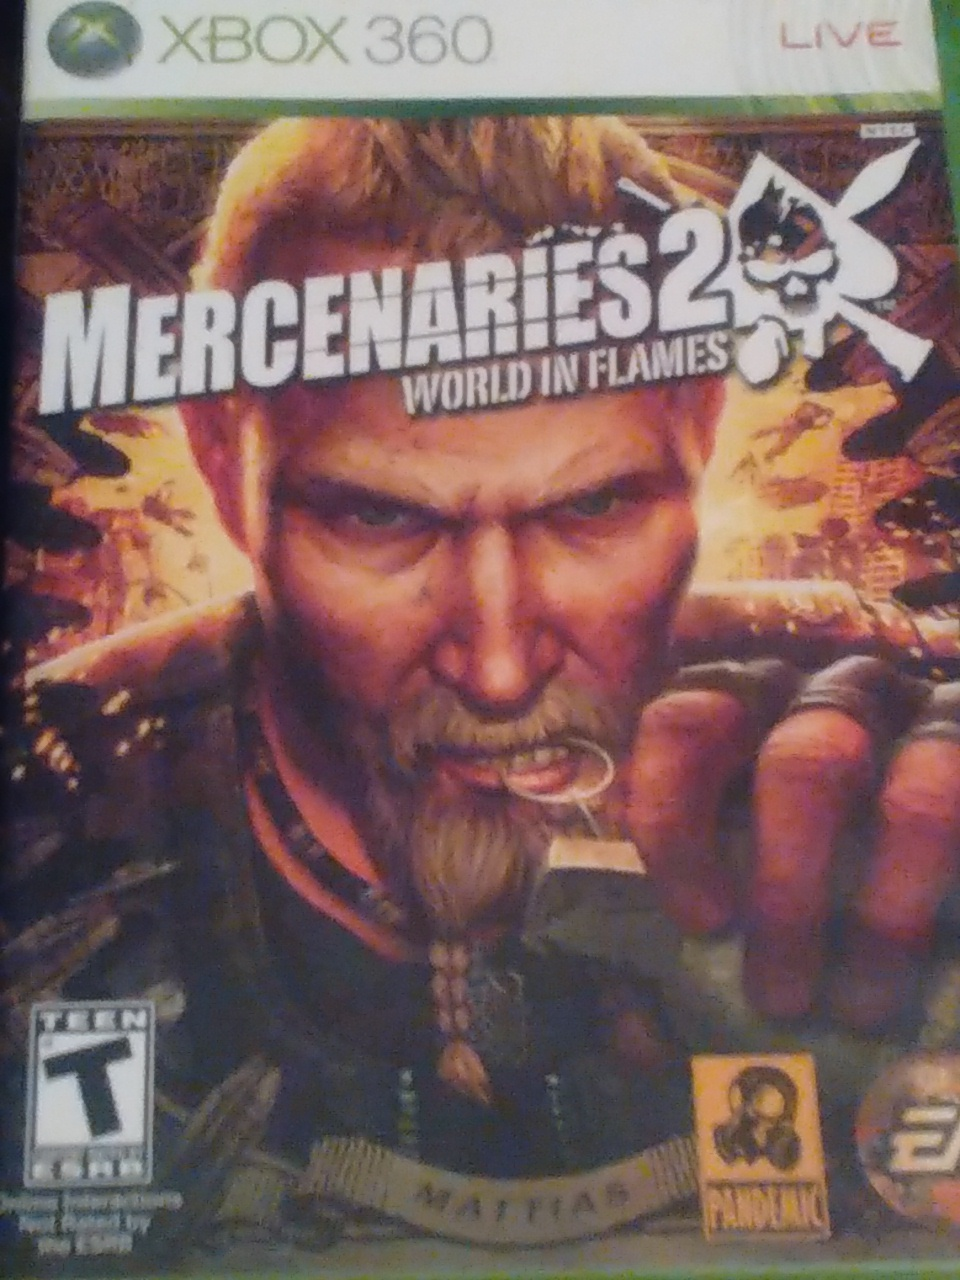 Primary image for Mercenaries 2 world in Flames Xbox 360